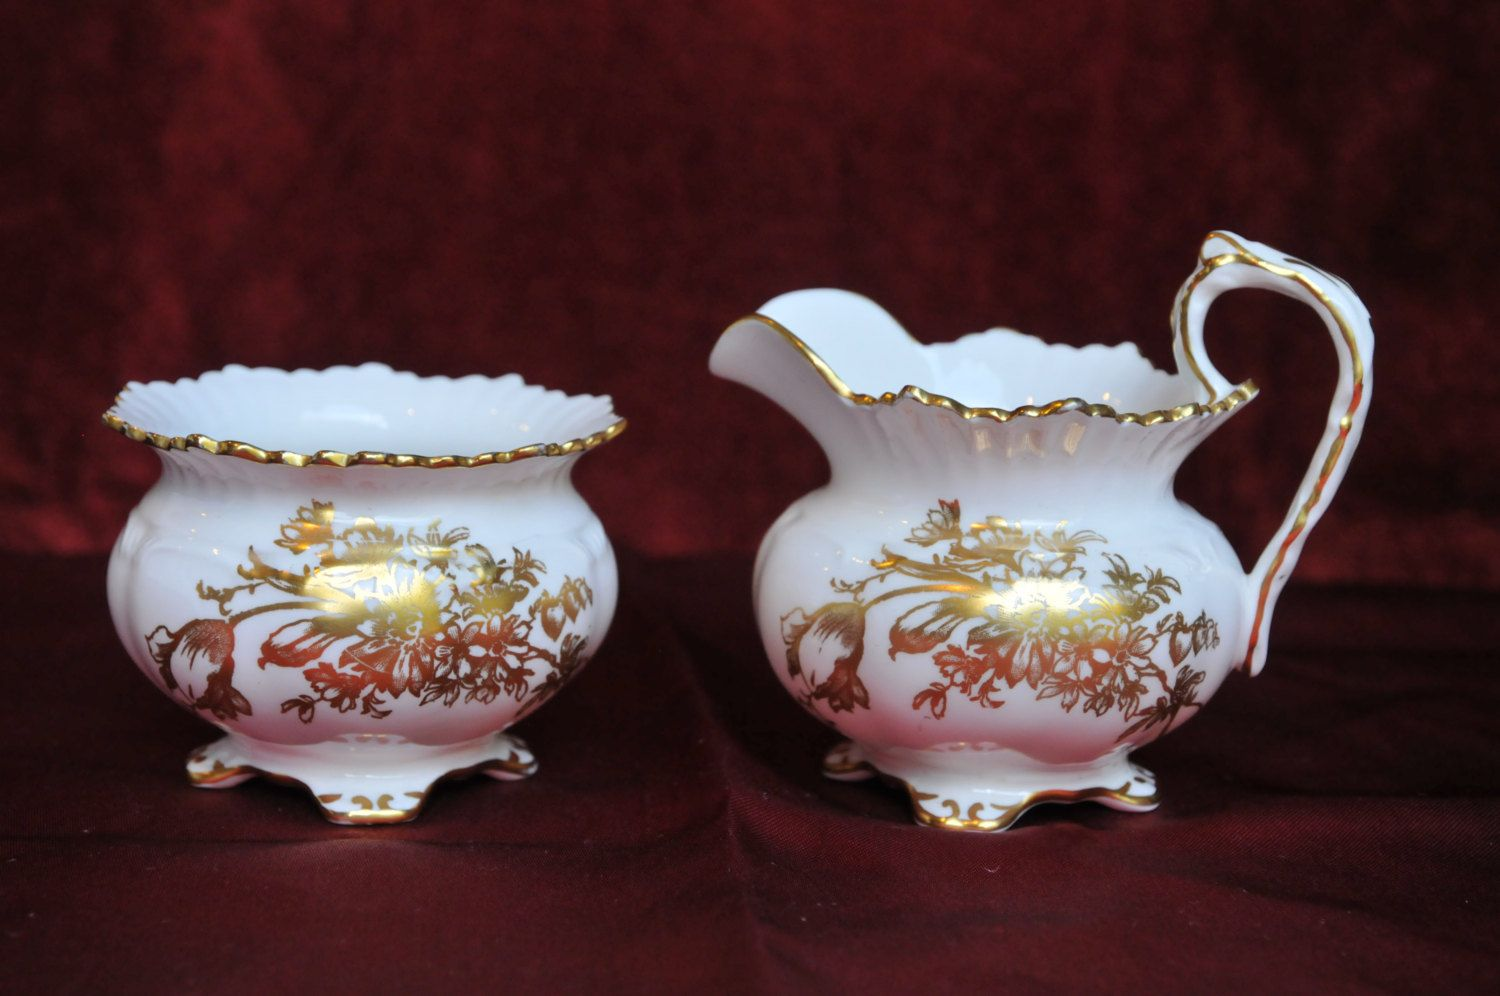 SALE!  20% OFF!  Vintage Aynsley Bone China Creamer Jug and Sugar Bowl with Gold Flower Pattern Regal Footed by Bautistacollectibles on Etsy